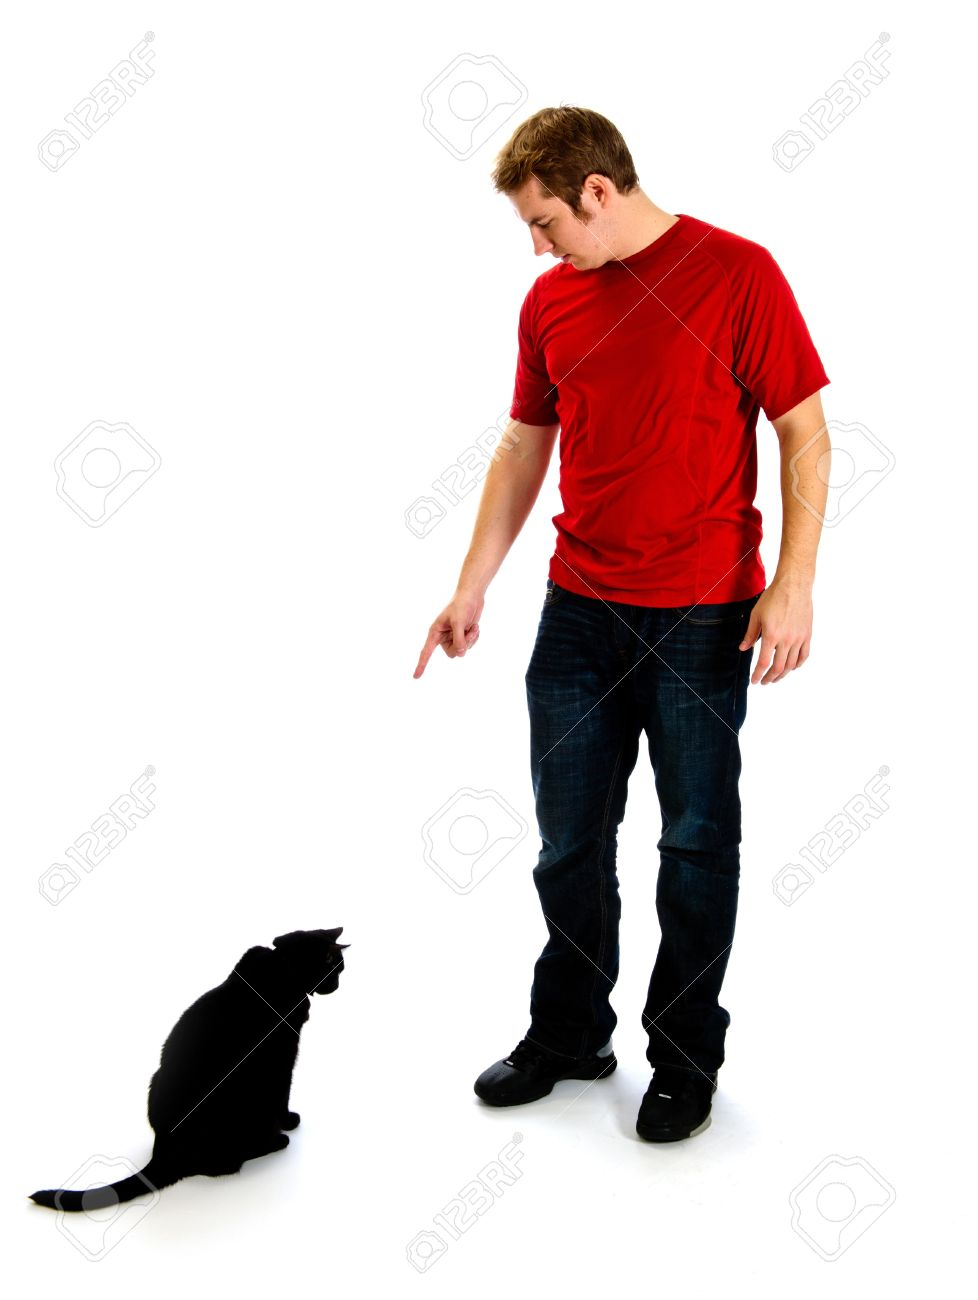 Young Man In A Red Shirt And Jeans, Is Pointing Down At A Black ...